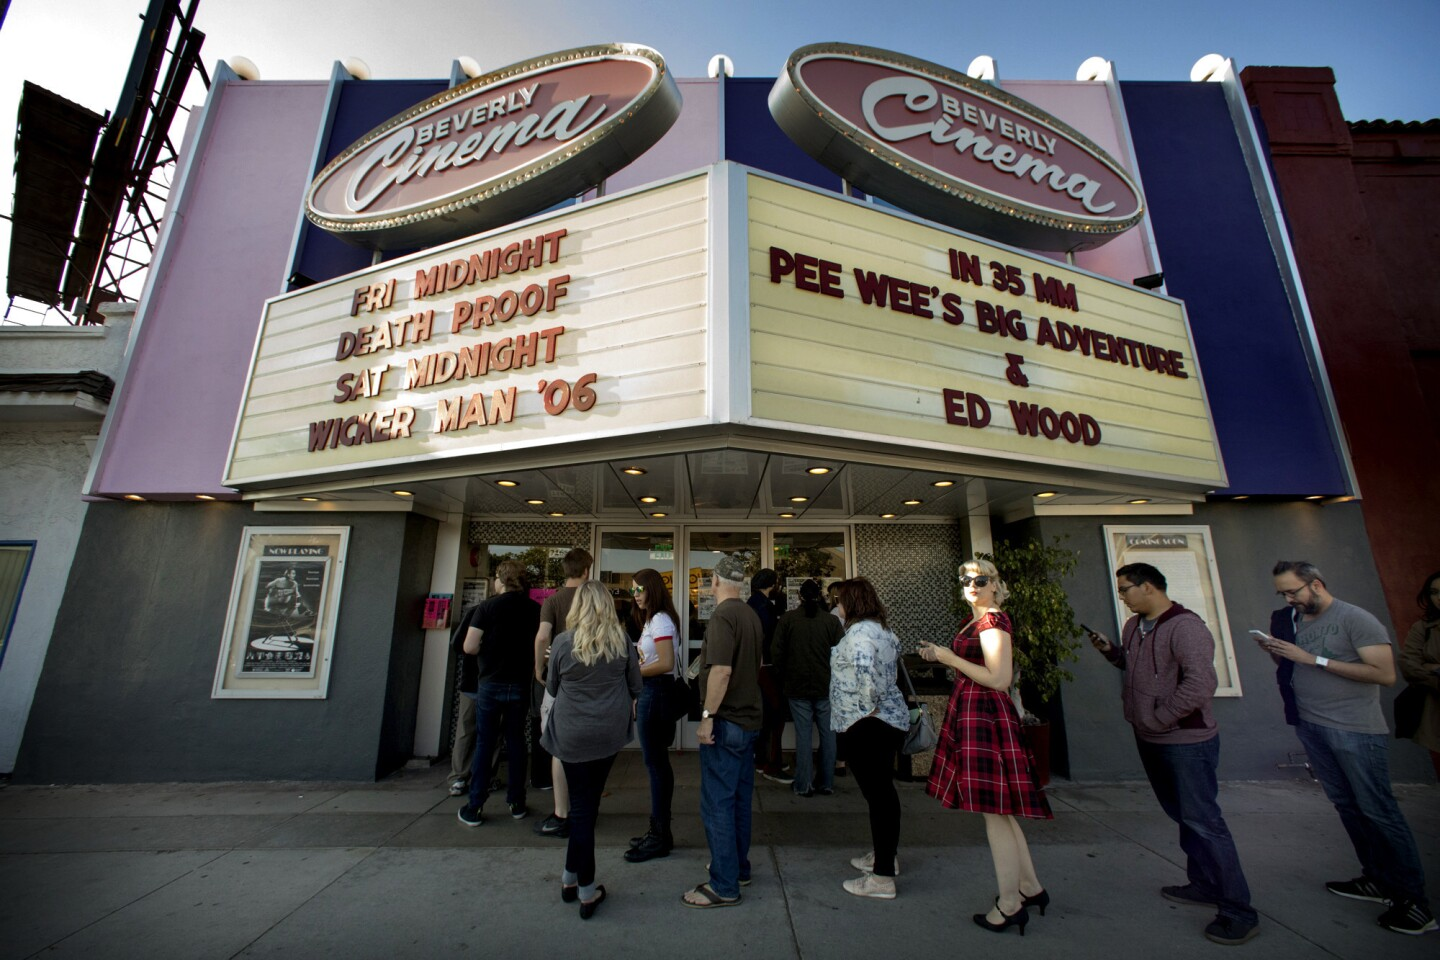 """Moviegoers at the New Beverly Cinema wait in line for the Tim Burton double feature of """"Pee-wee's Big Adventure"""" and """"Ed Wood."""" The New Beverly Cinema is known for its daily screenings of 35mm films as opposed to digital formats."""